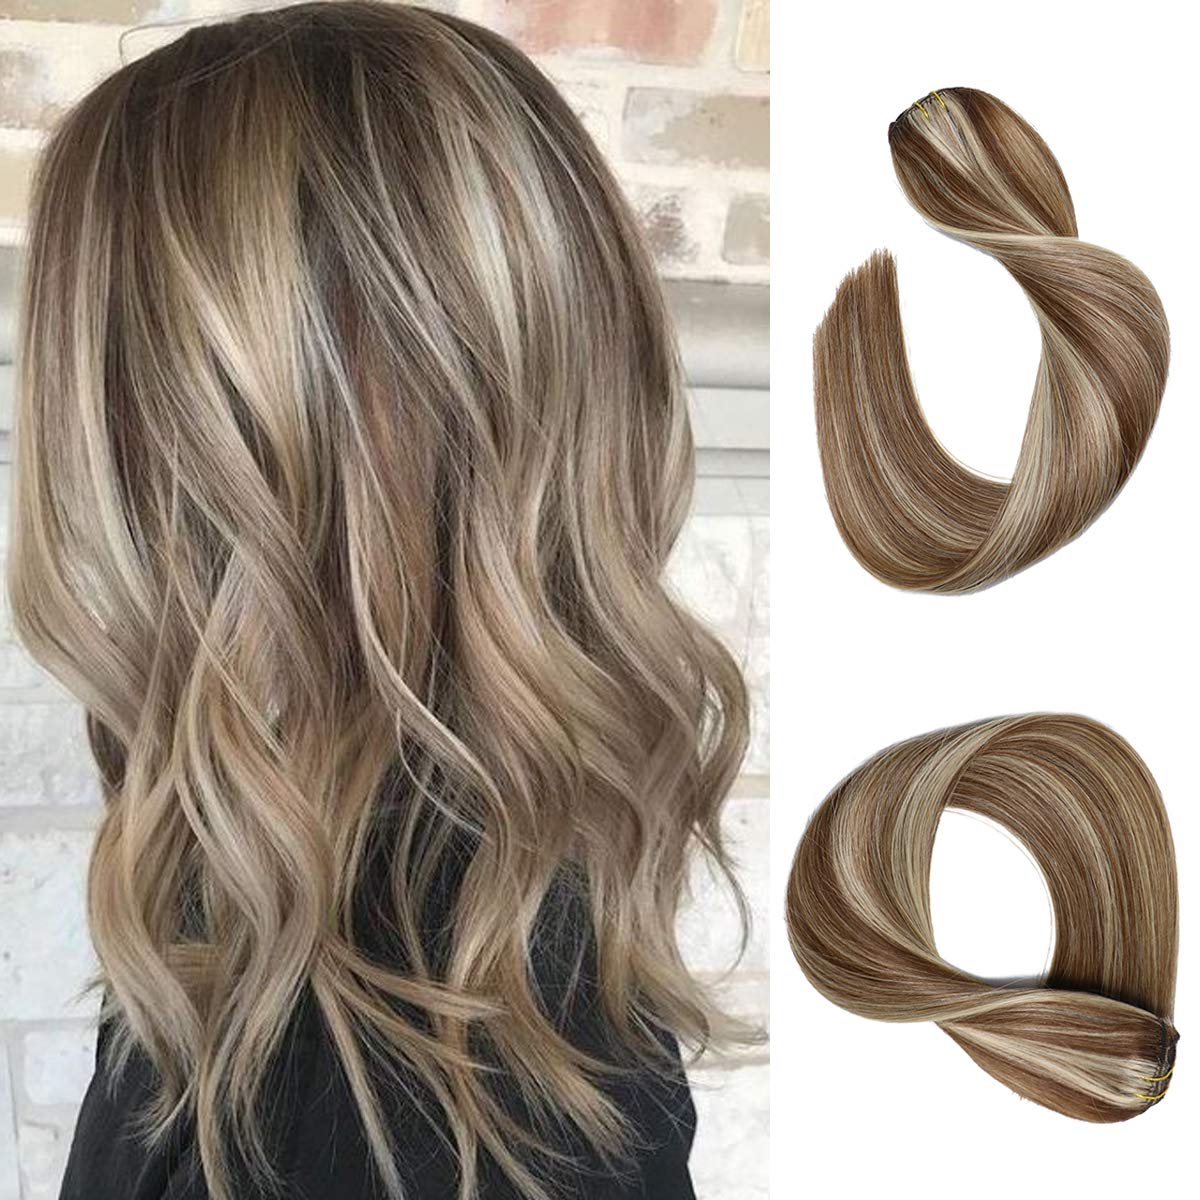 Clip in Hair Extensions Chestnut Brown with Blonde Highlights Straight Real Human Hair Clip in Extensions 7 Pieces 70 Gram Silky Straight Double Weft Remy